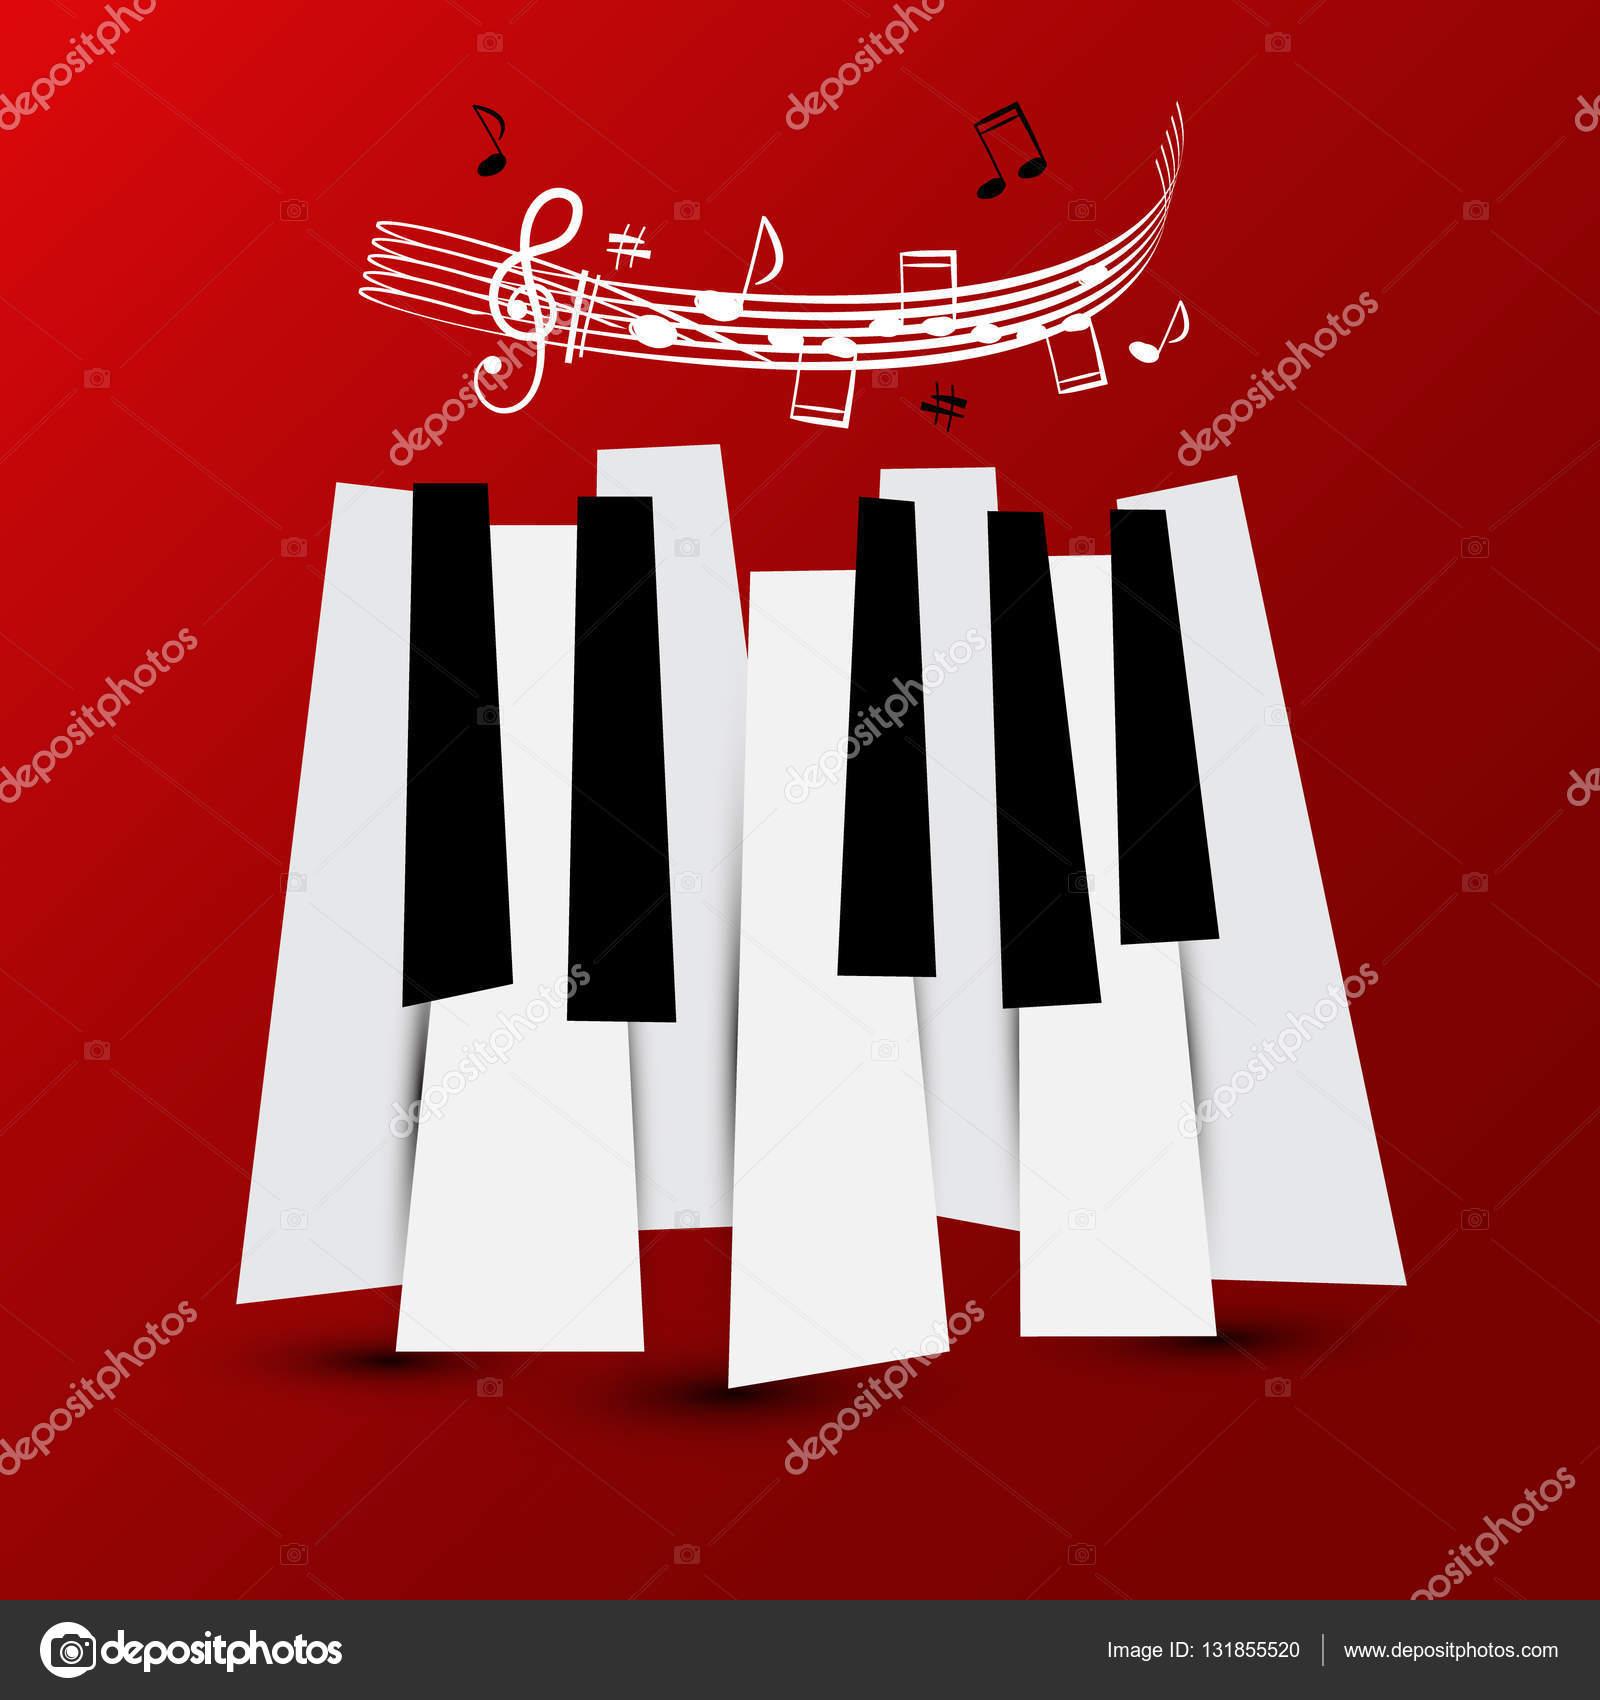 Music symbol vector piano keys with staff and notes keyboard on music symbol vector piano keys with staff and notes keyboard on red background buycottarizona Gallery